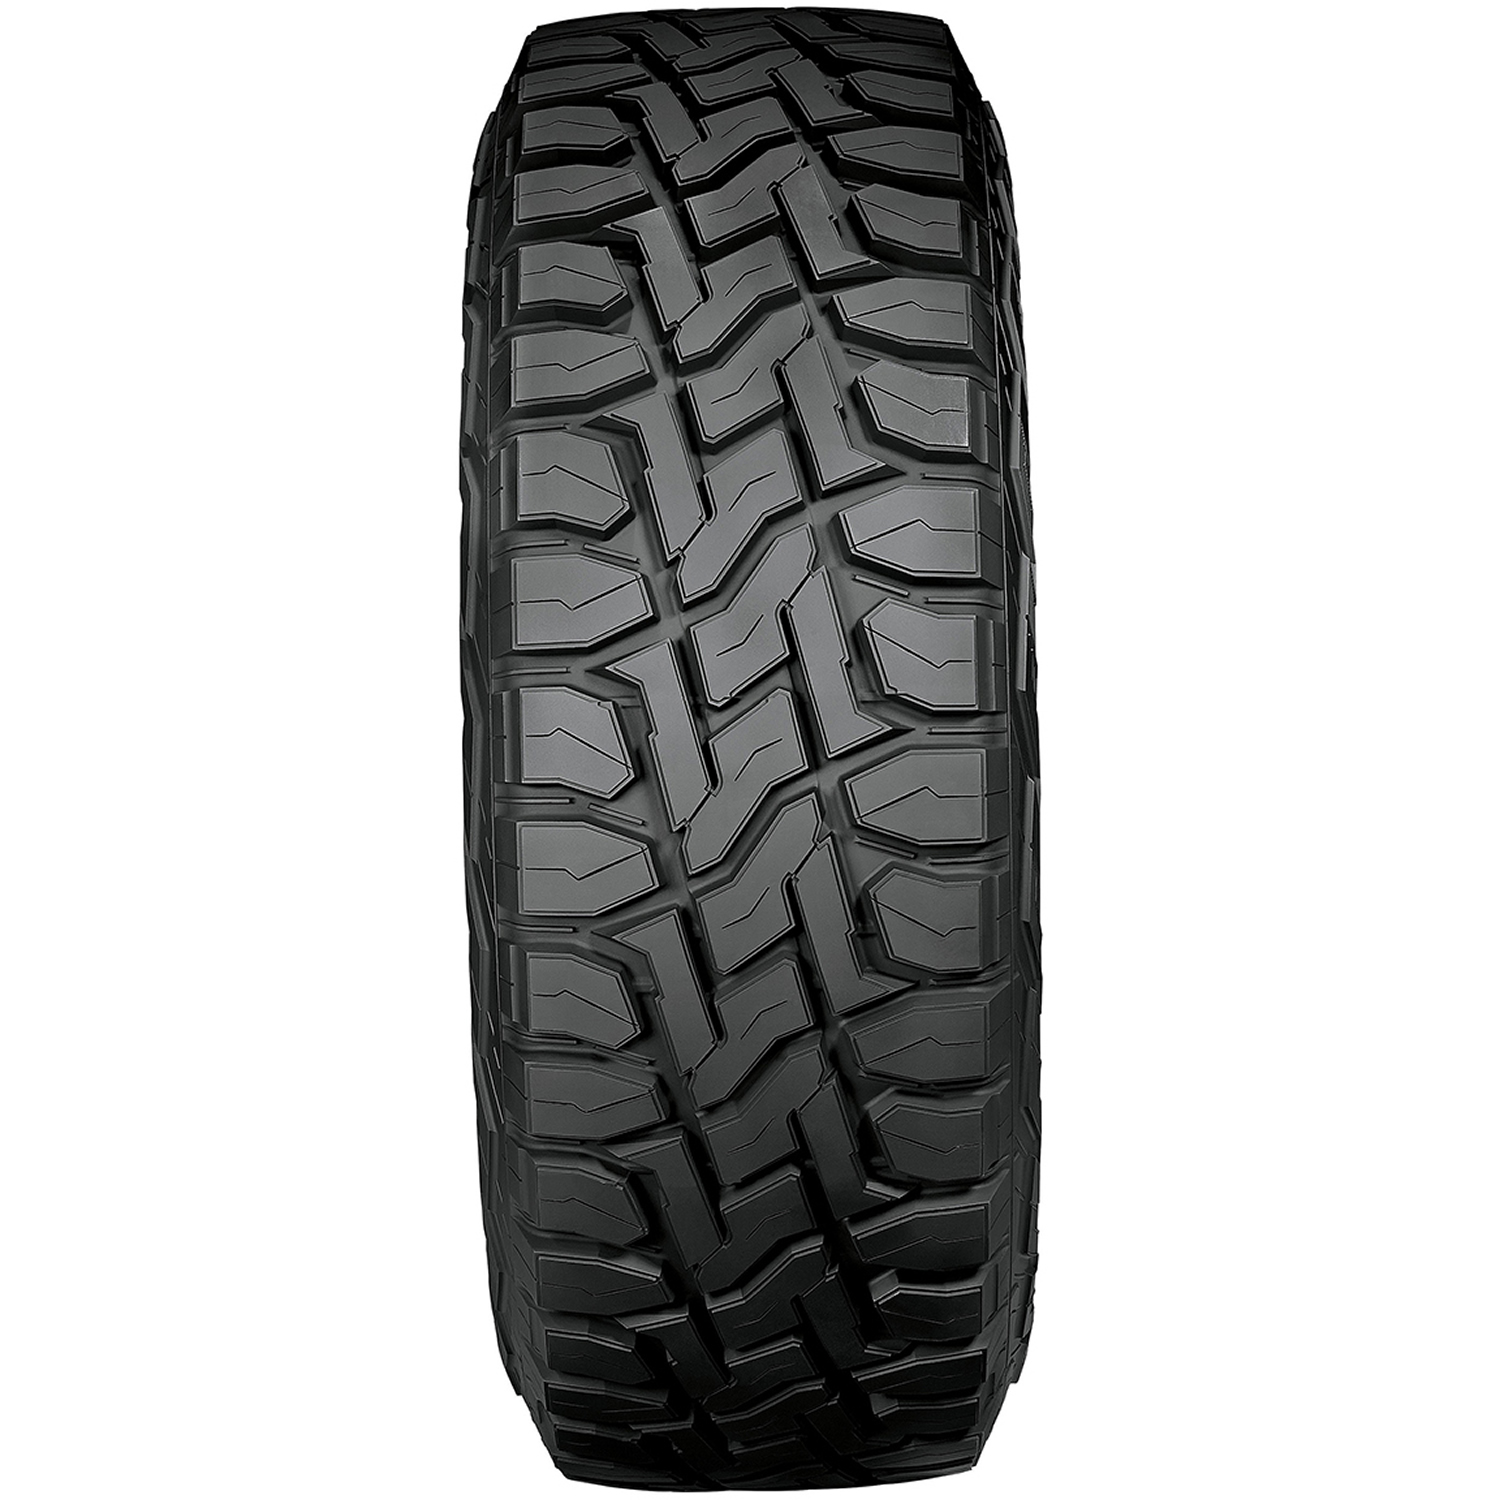 Toyo Open Country RT LT285/60R18